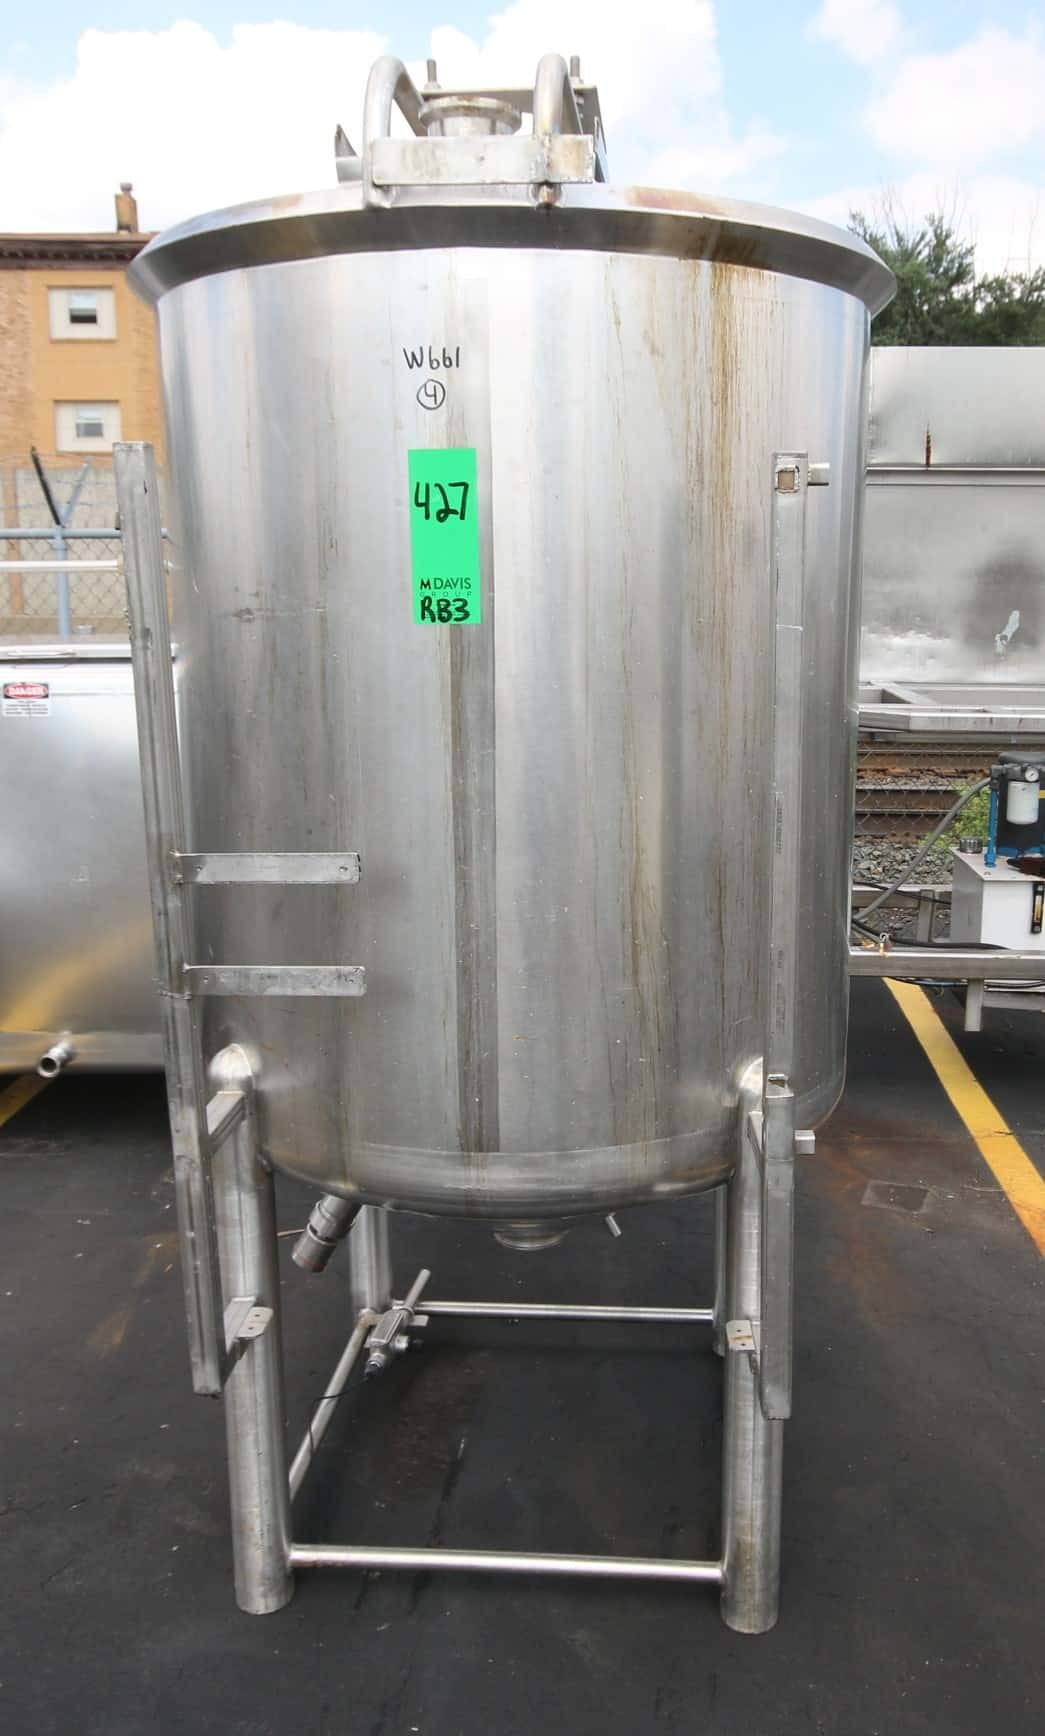 "Cherry Burrel 250 Gal. Vertical Single Wall S/S Tank, with Cone Bottom with 4"" Discharge Clamp Fitting, Open Top, Level Sensor, Includes Bridge Platform for Agitator, Mounted on S/S Legs, (Note: Agitator Not Included), Overall Diam. 8 ft H x 45"" W)"